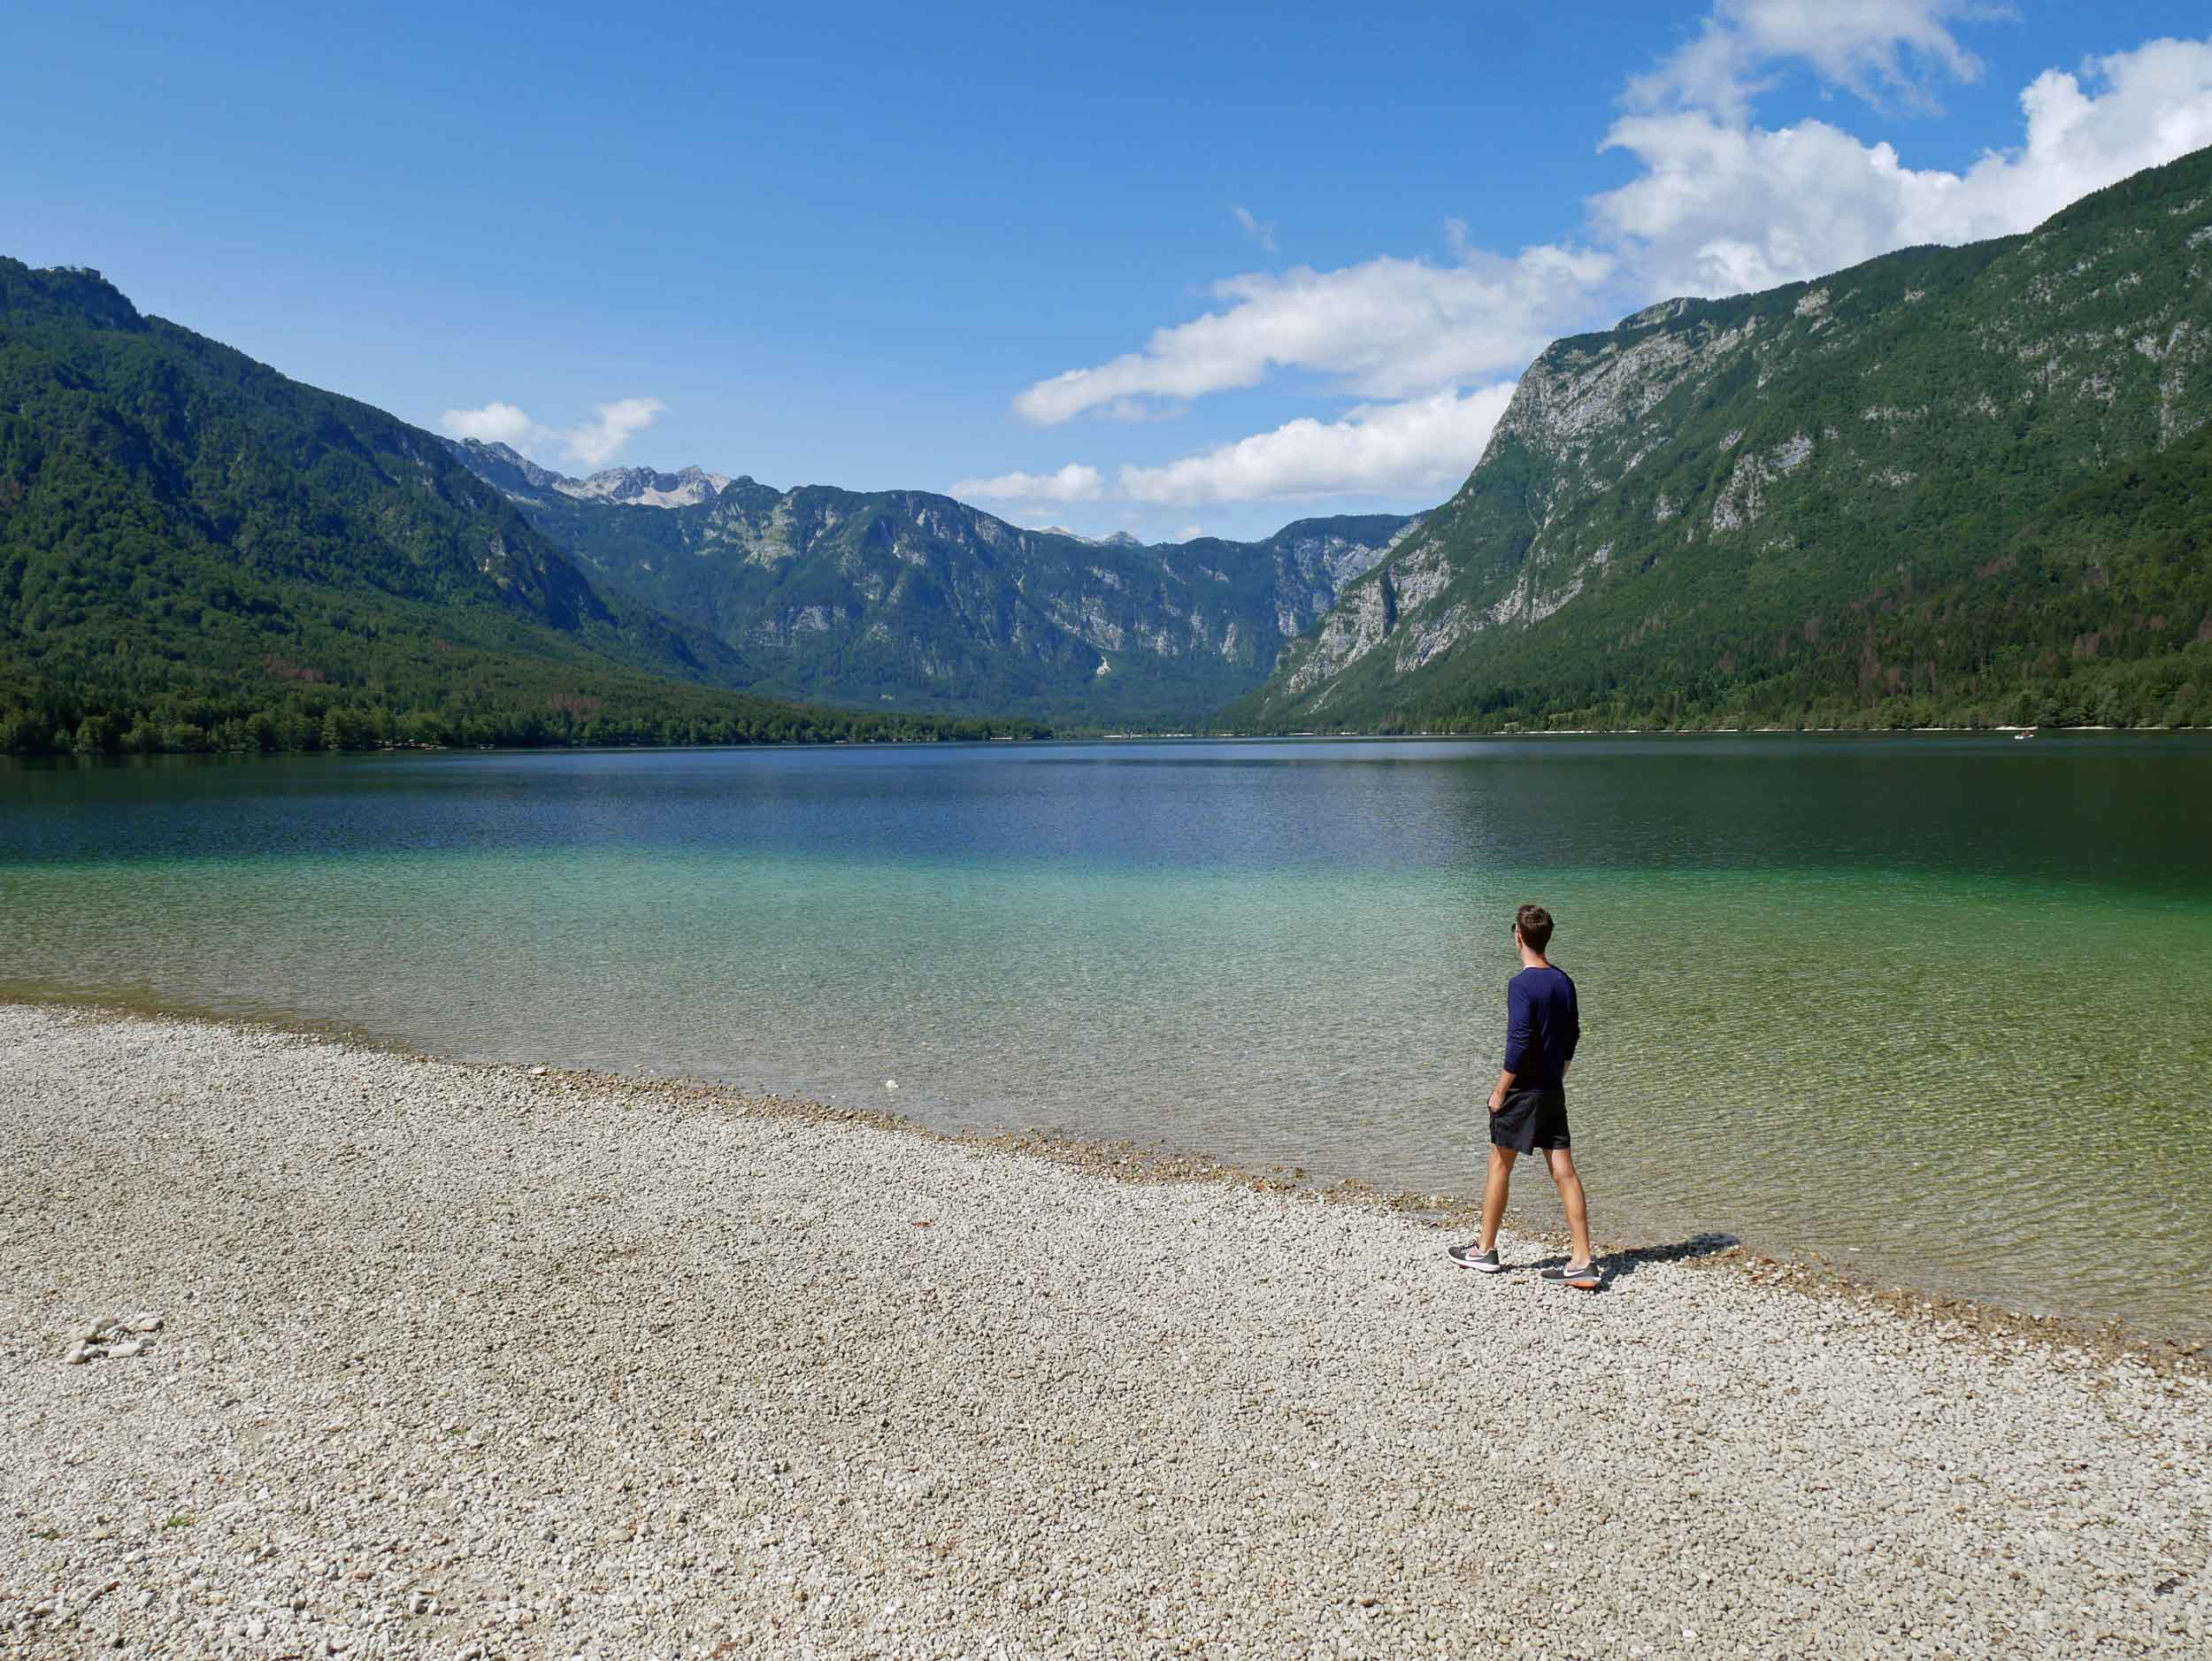 We spent the day at Slovenia's largest lake, Bohinj, which was active with kayaks, volleyball and cyclists.